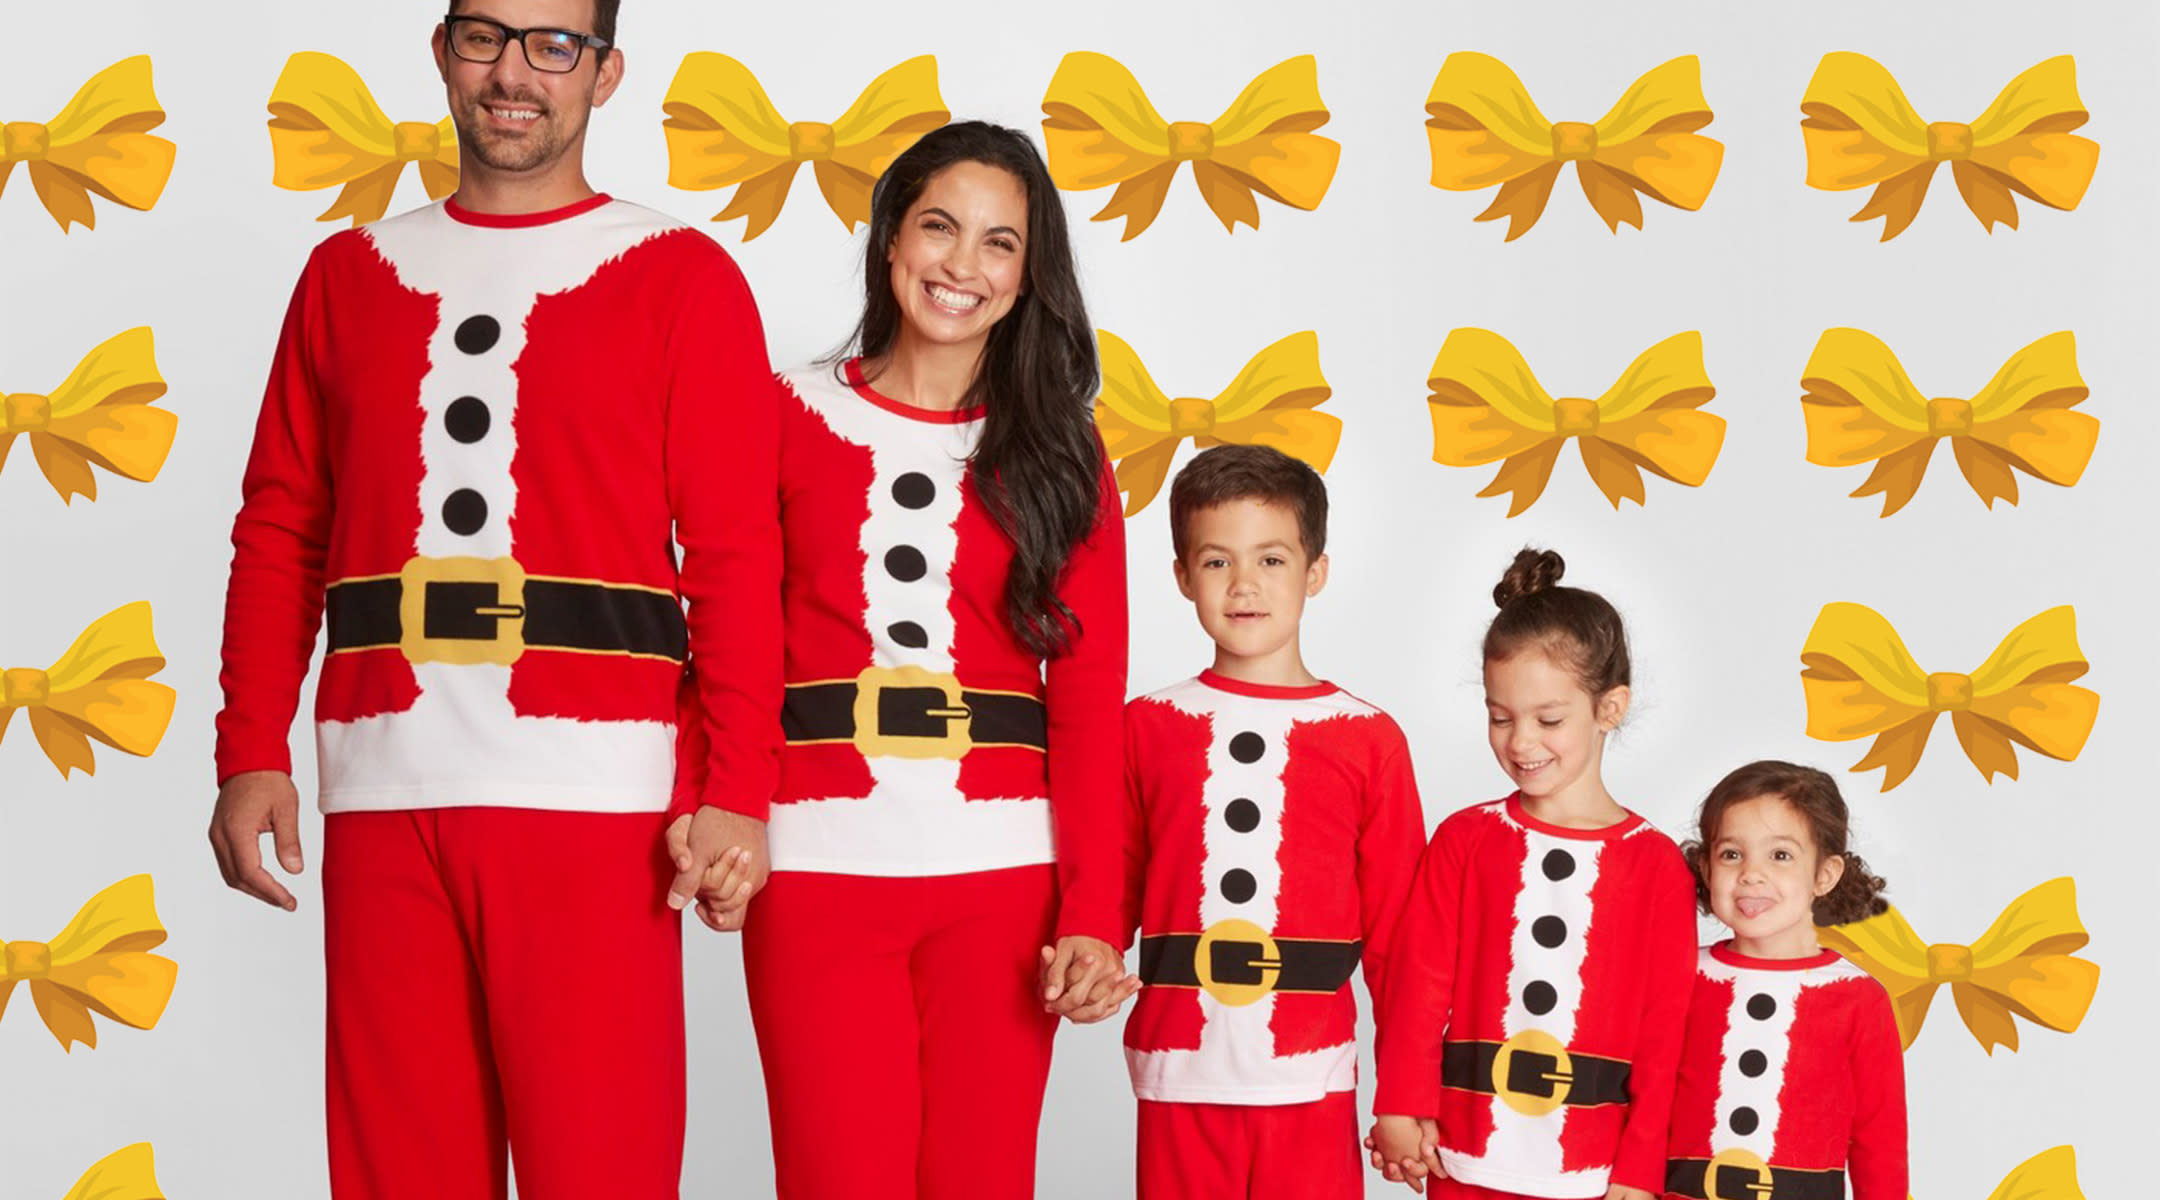 726330a3f0 Target Has a Collection of Holiday Matching PJs for the Family